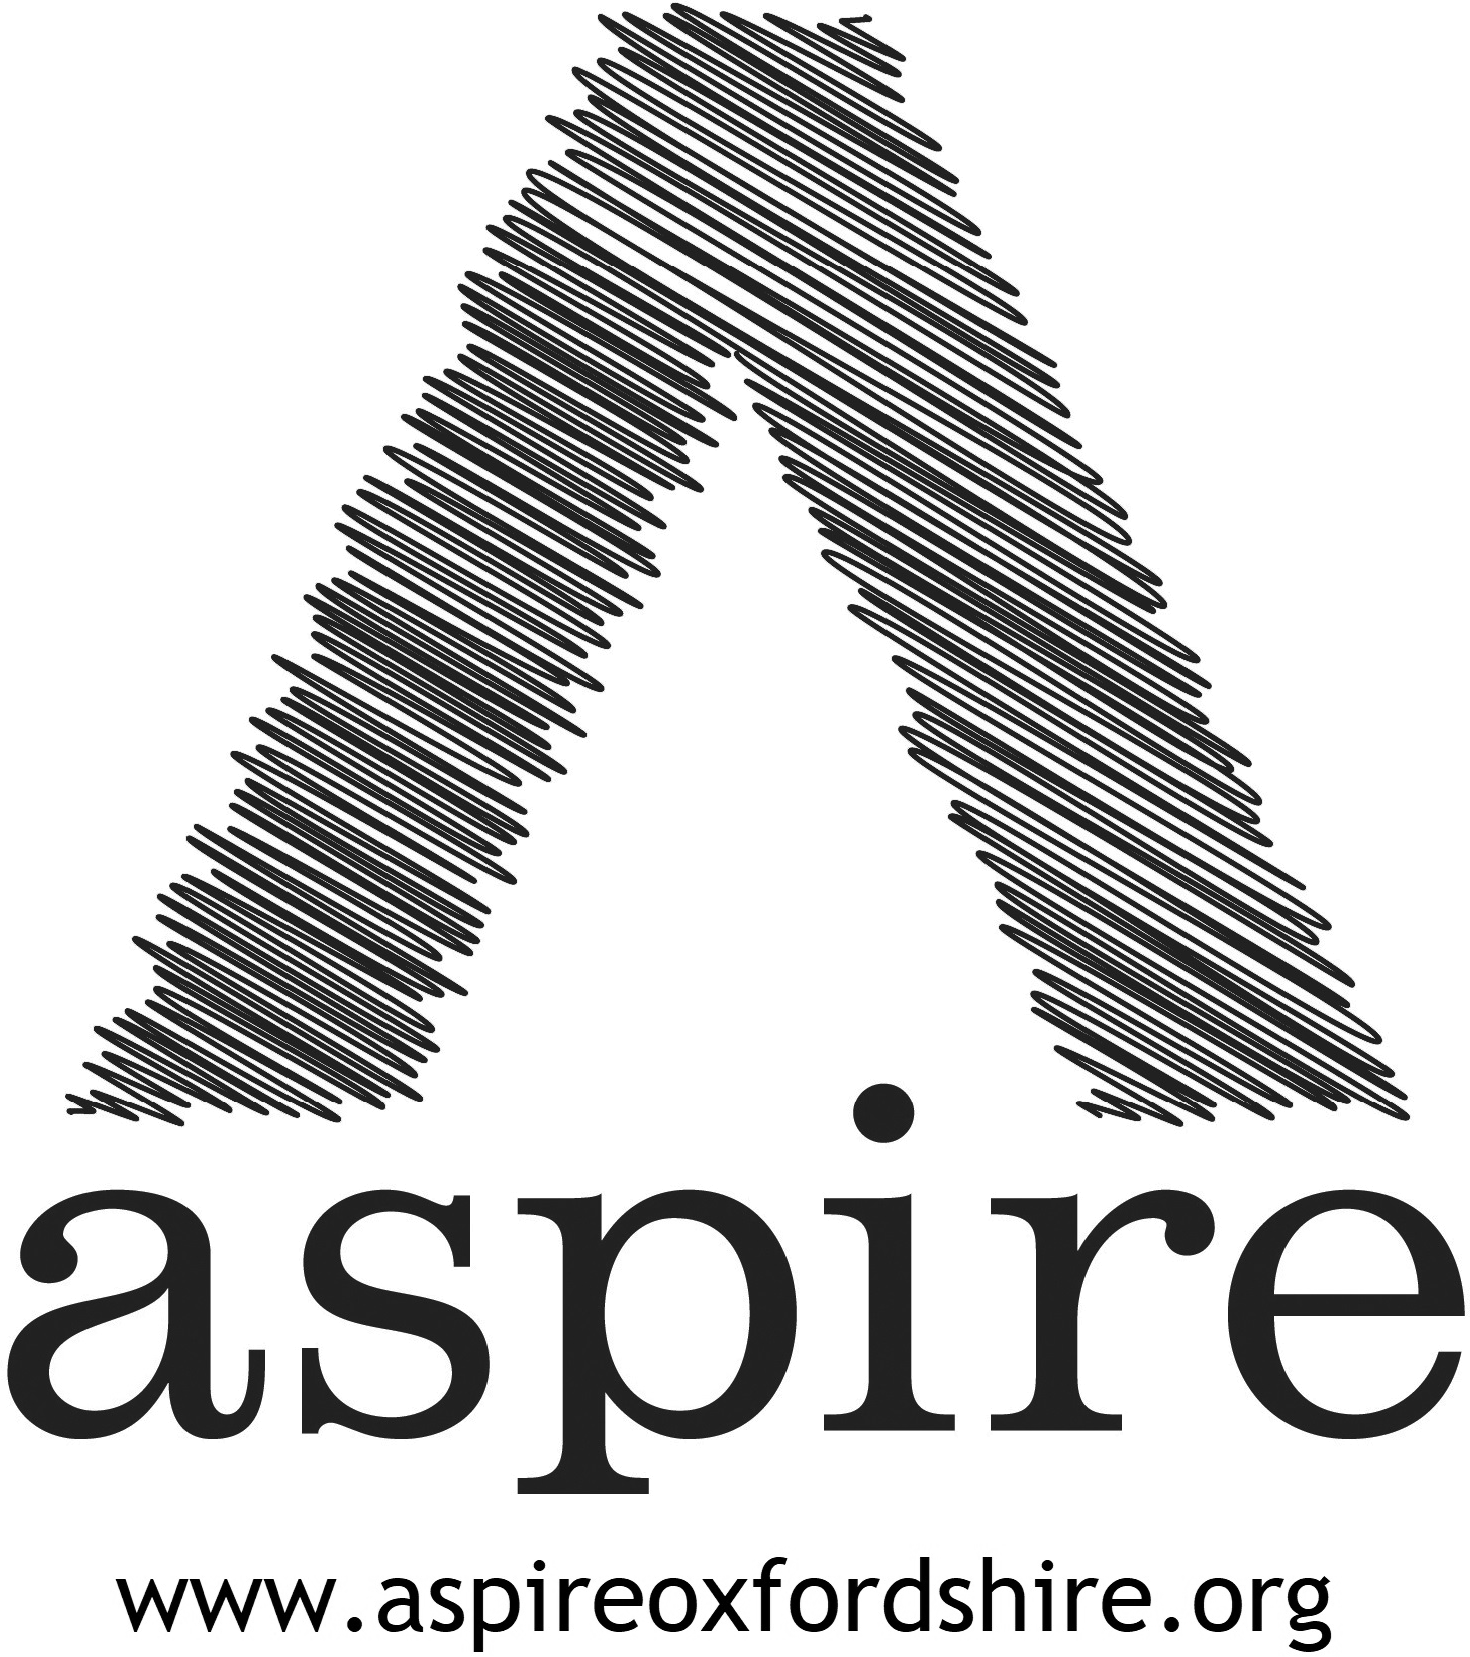 Aspire Oxfordshire [logo]